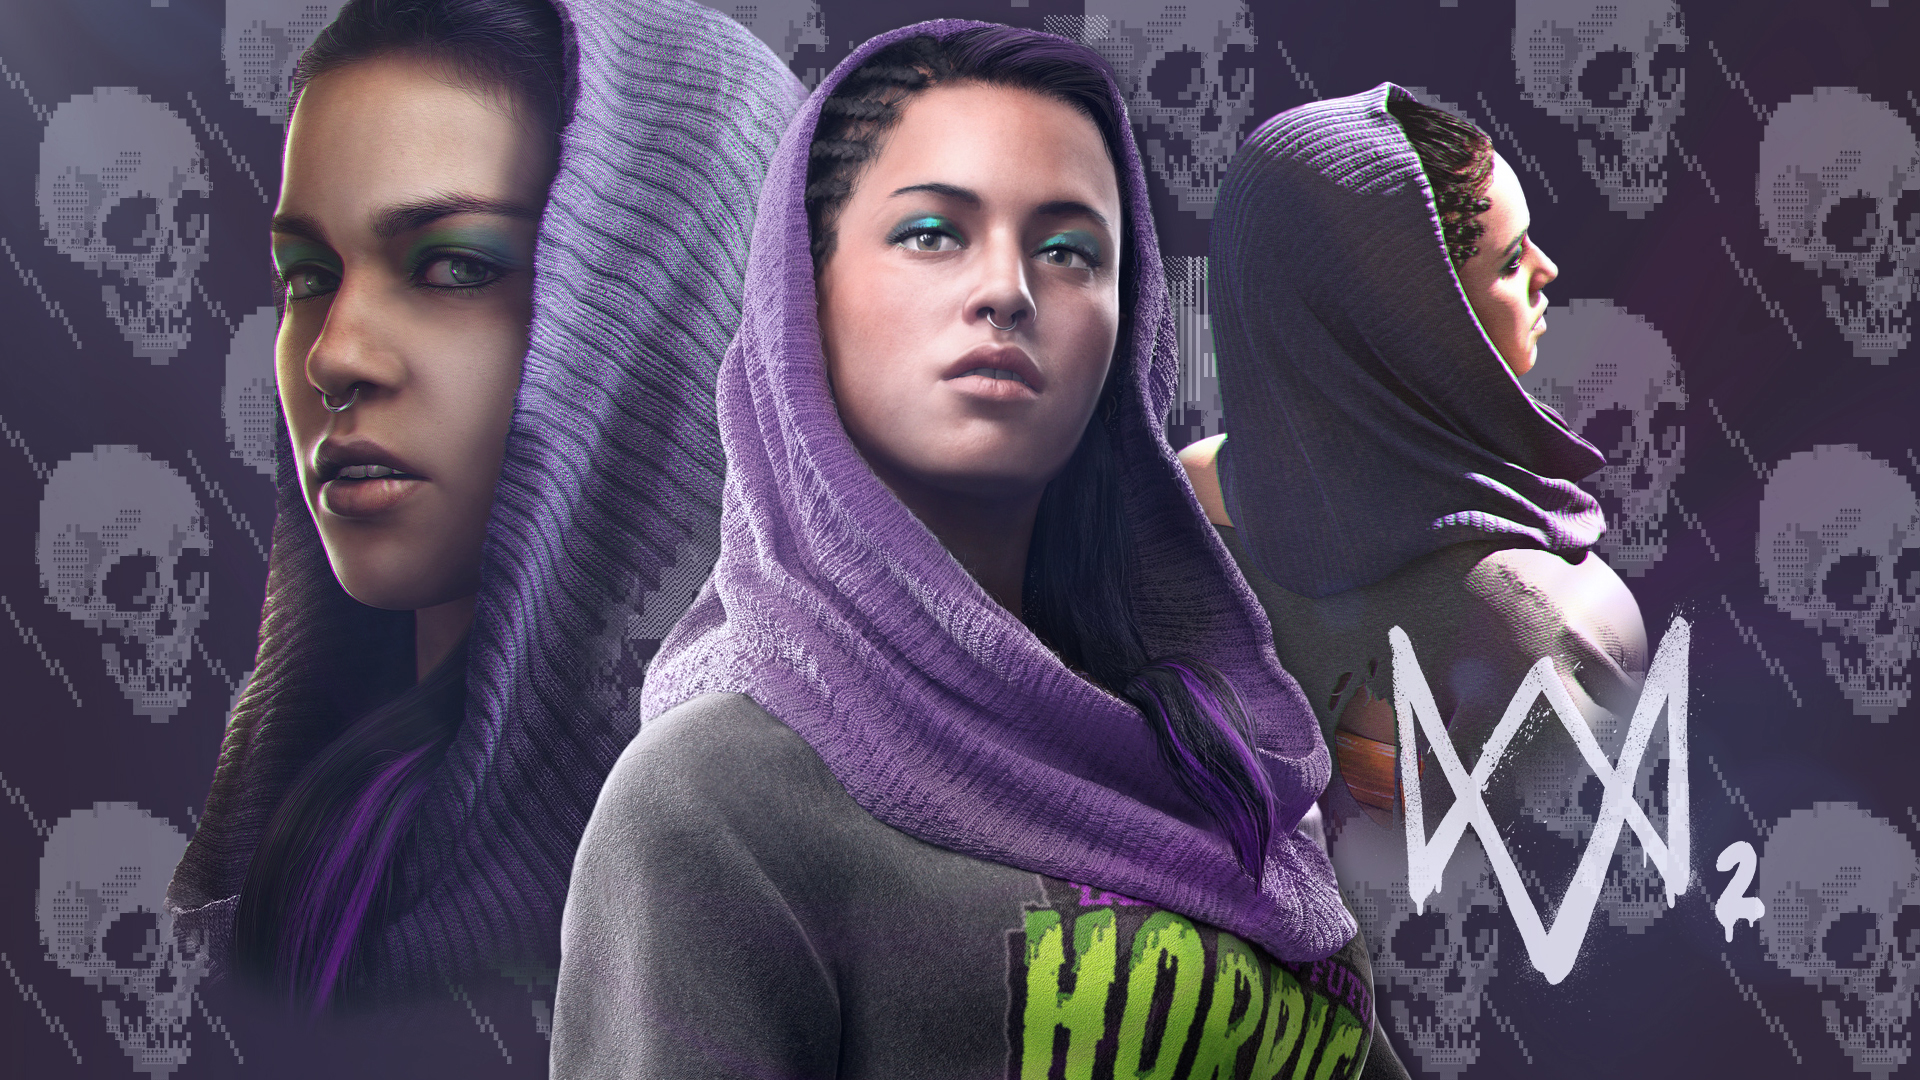 Watch Dogs 2 Sitara Dhawan Fan Wallpaper 2 By Digital Zky On